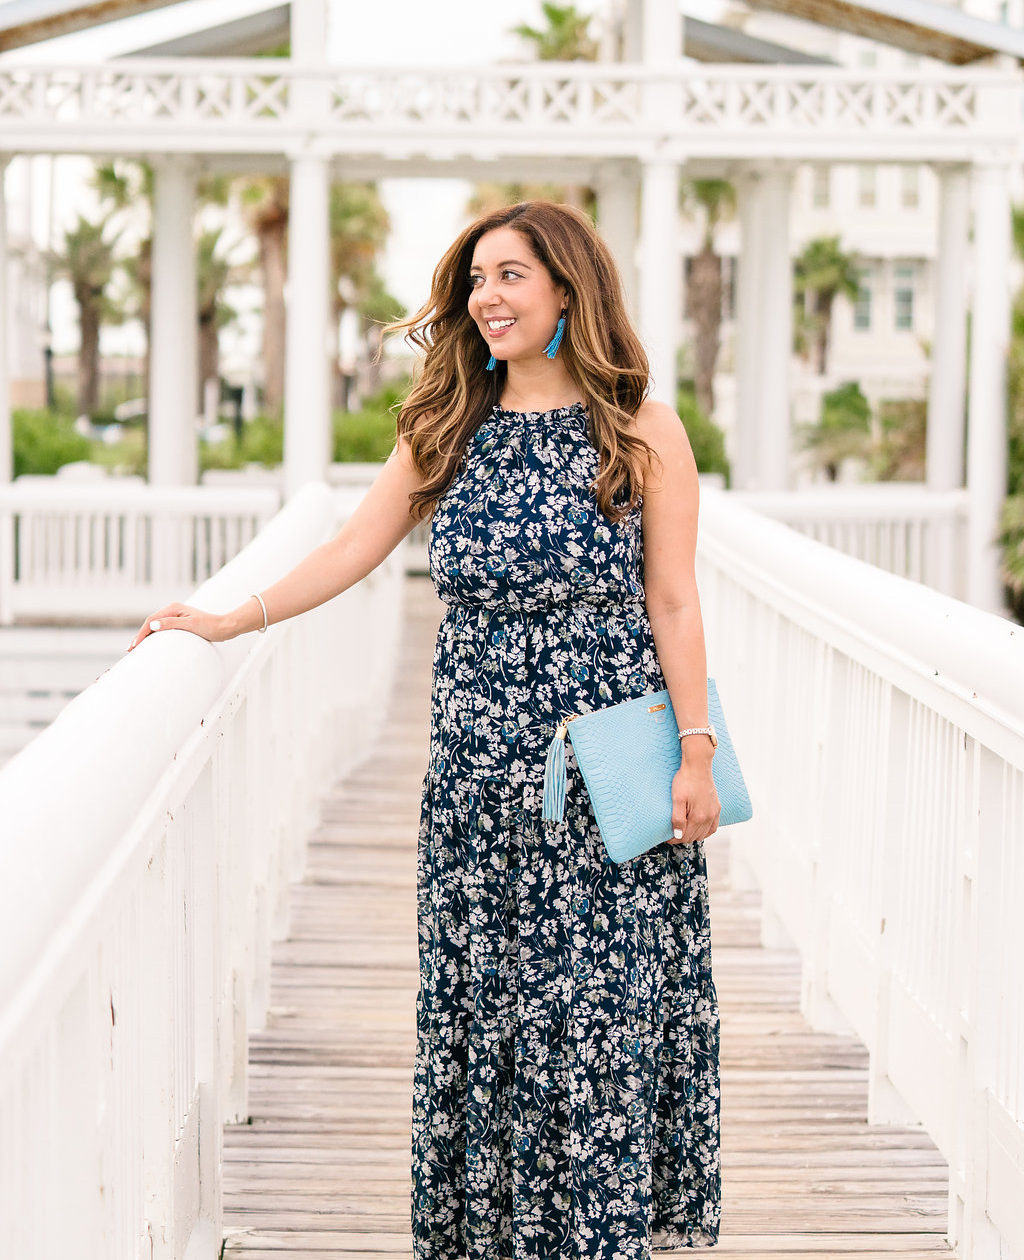 Floral Tiered Maxi Dress // The Hemliner